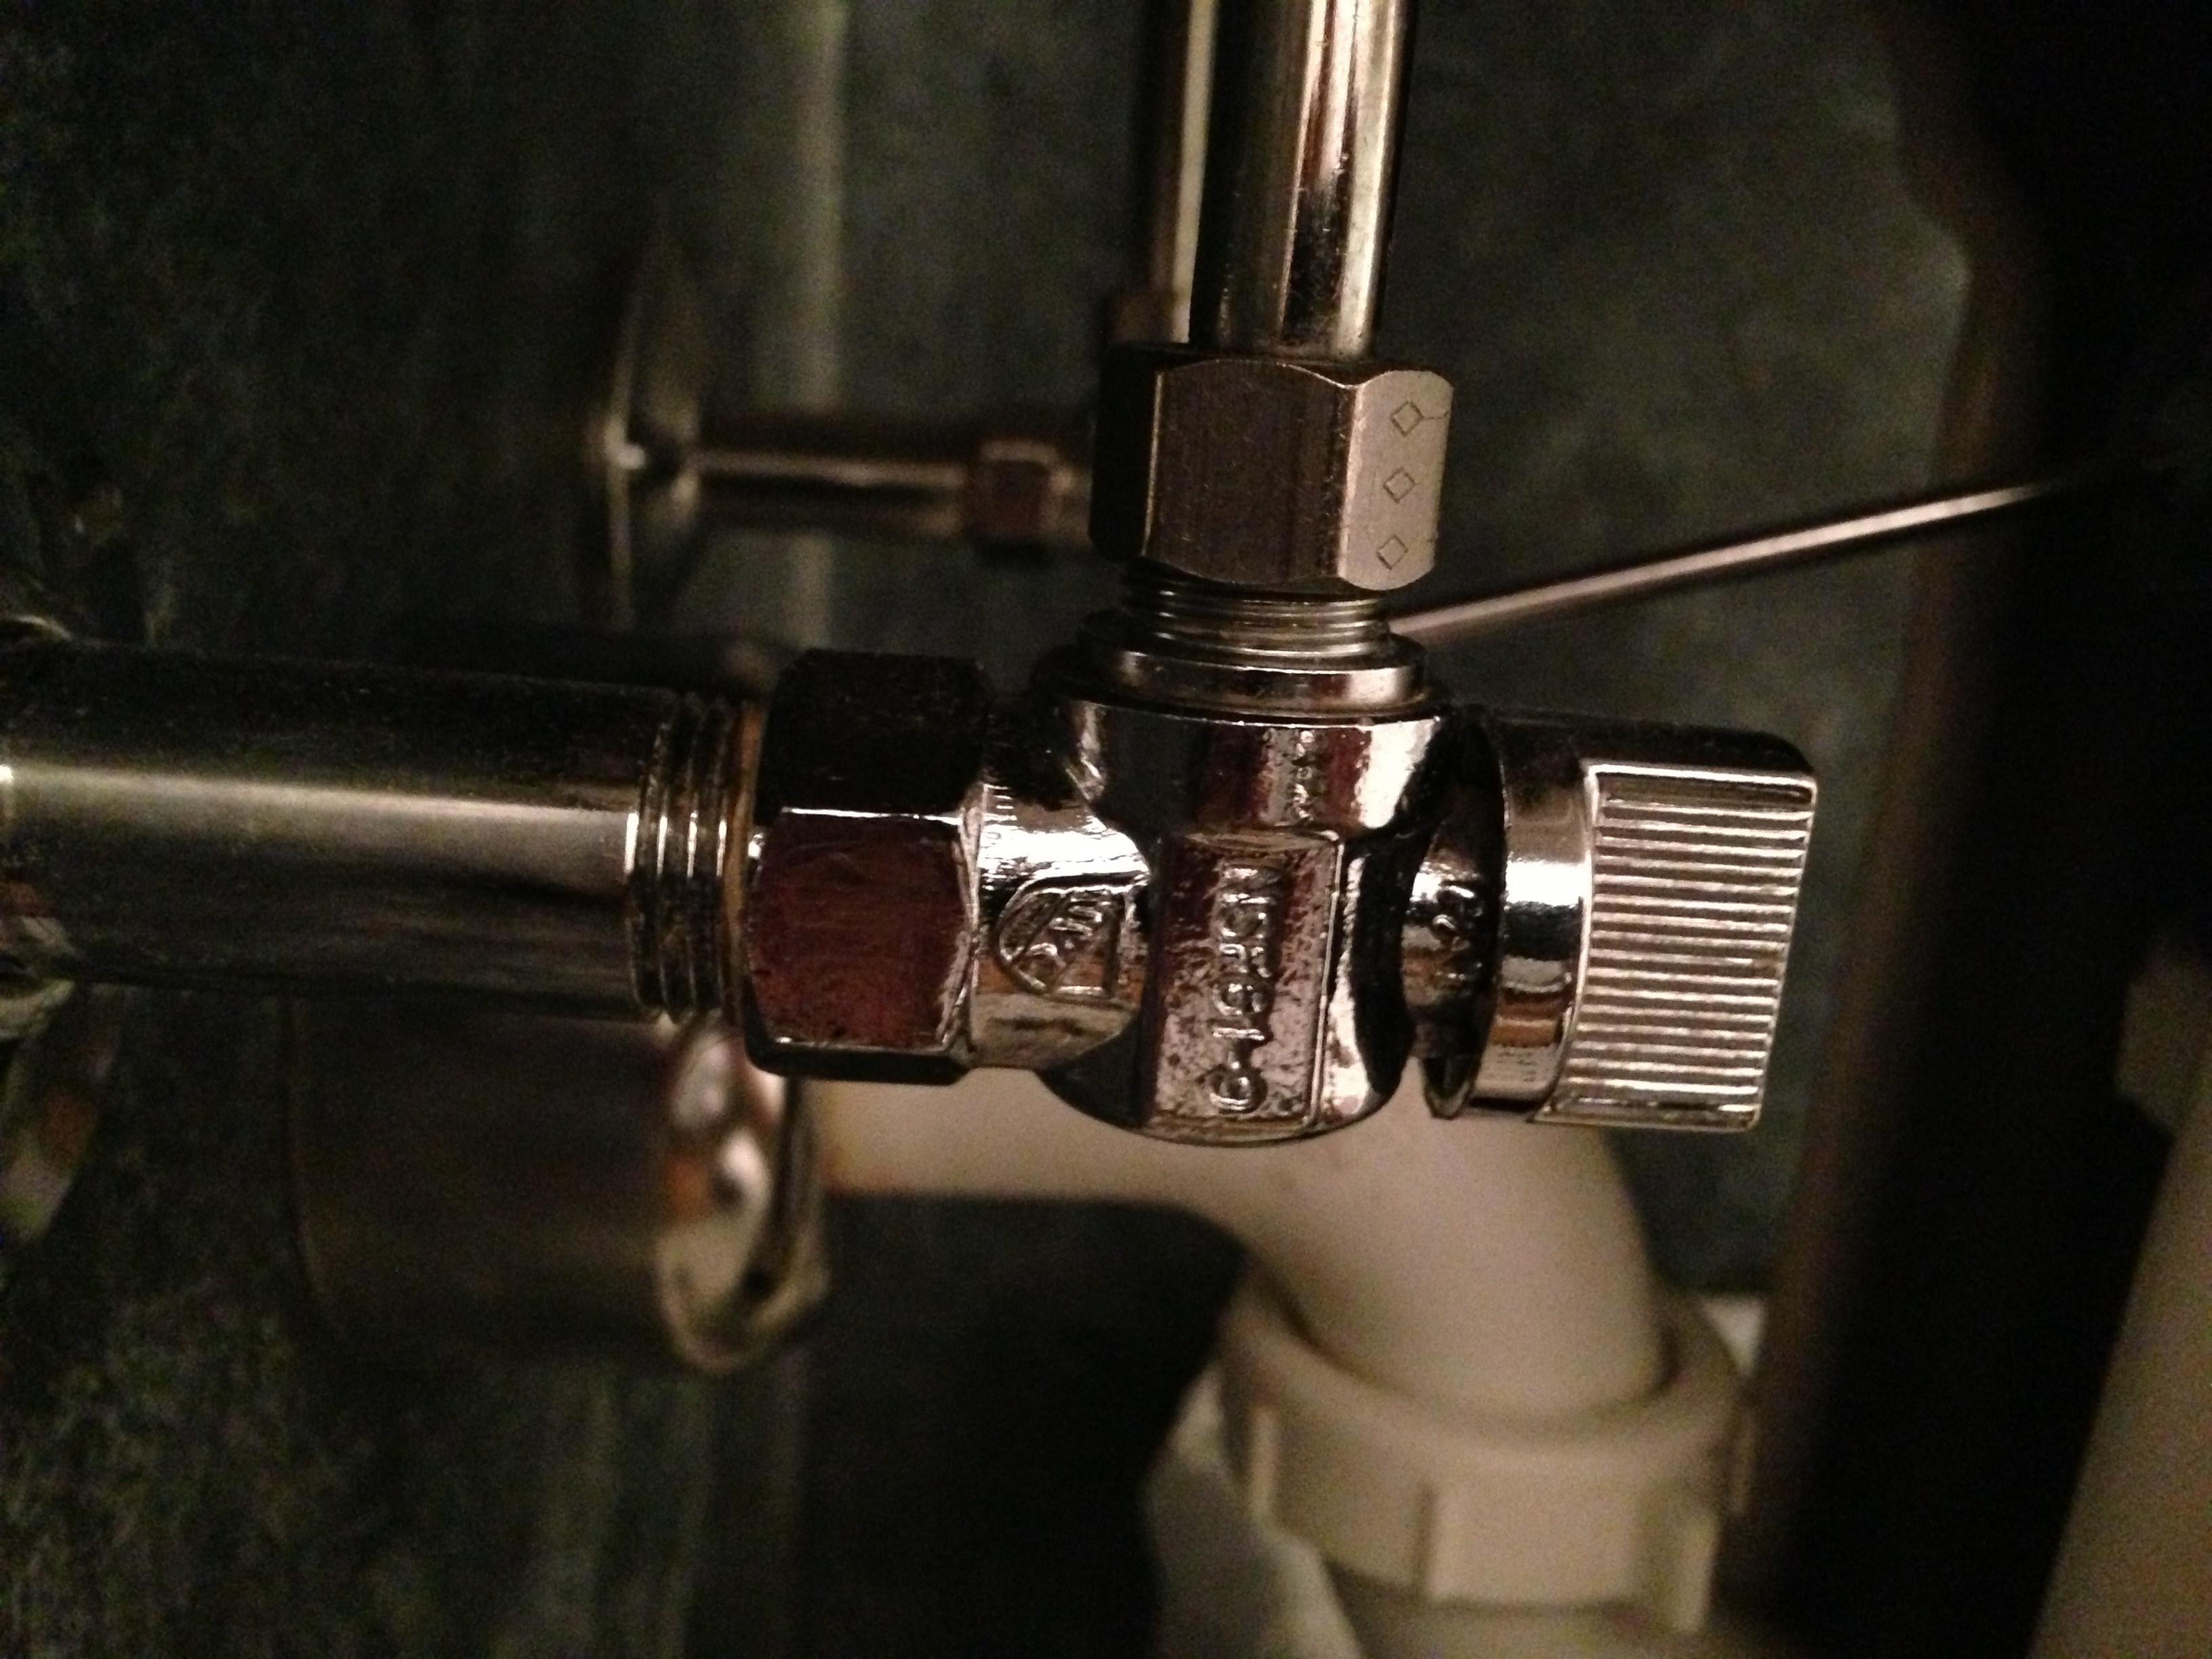 Replacement Of Toilet Shut-off Valve - Page 2 - Plumbing ...